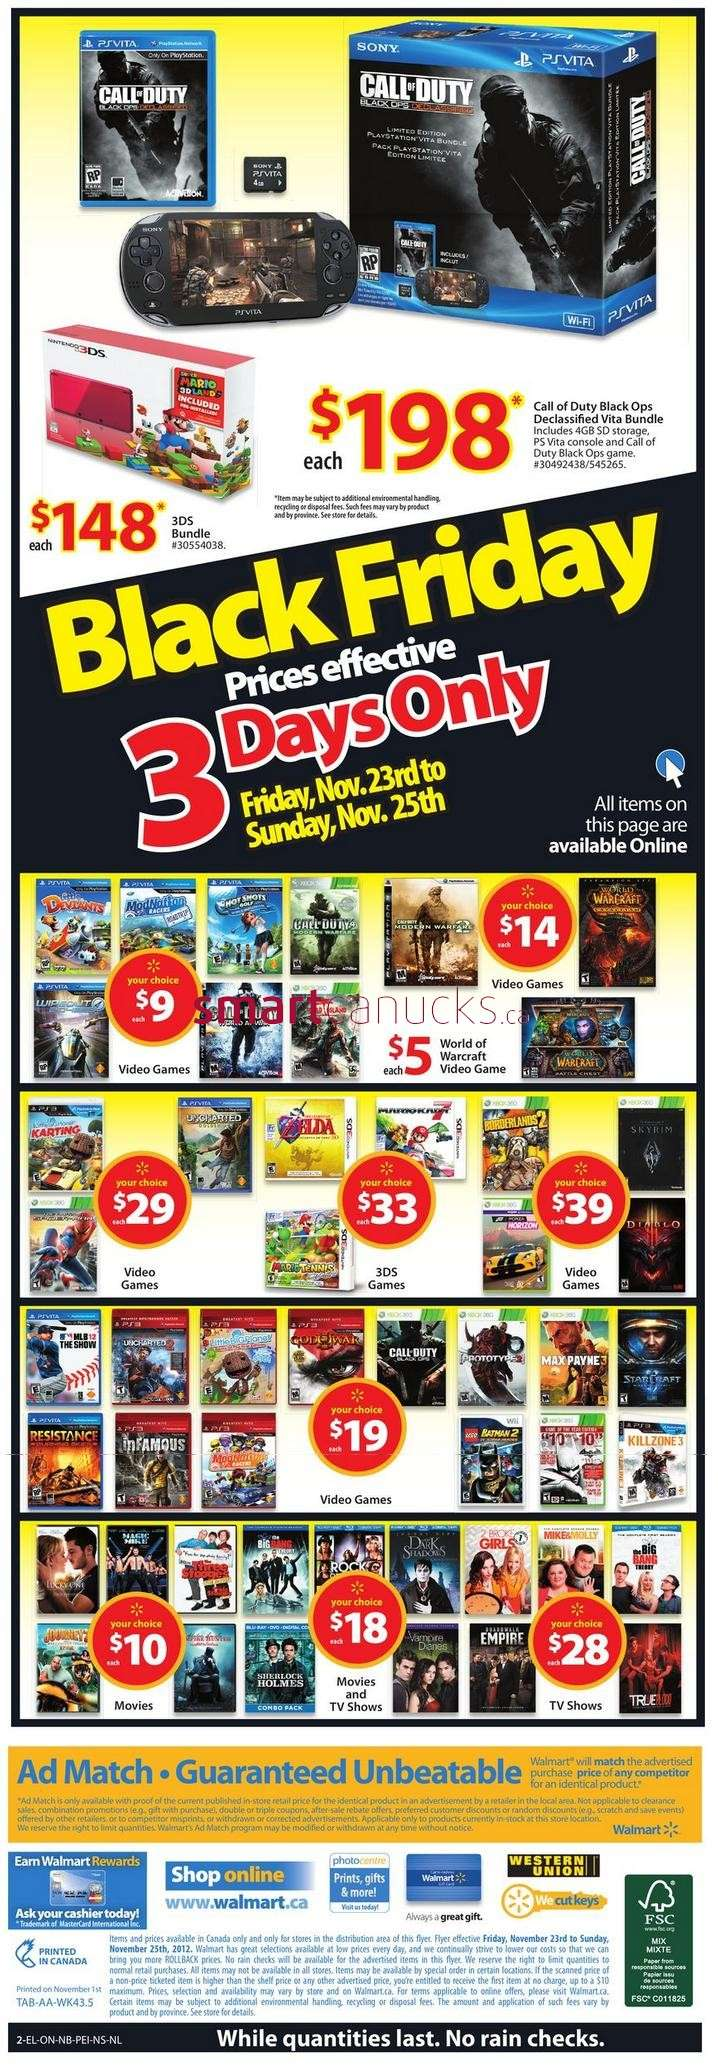 Walmart Canada Black Friday Flyer Sales 2012